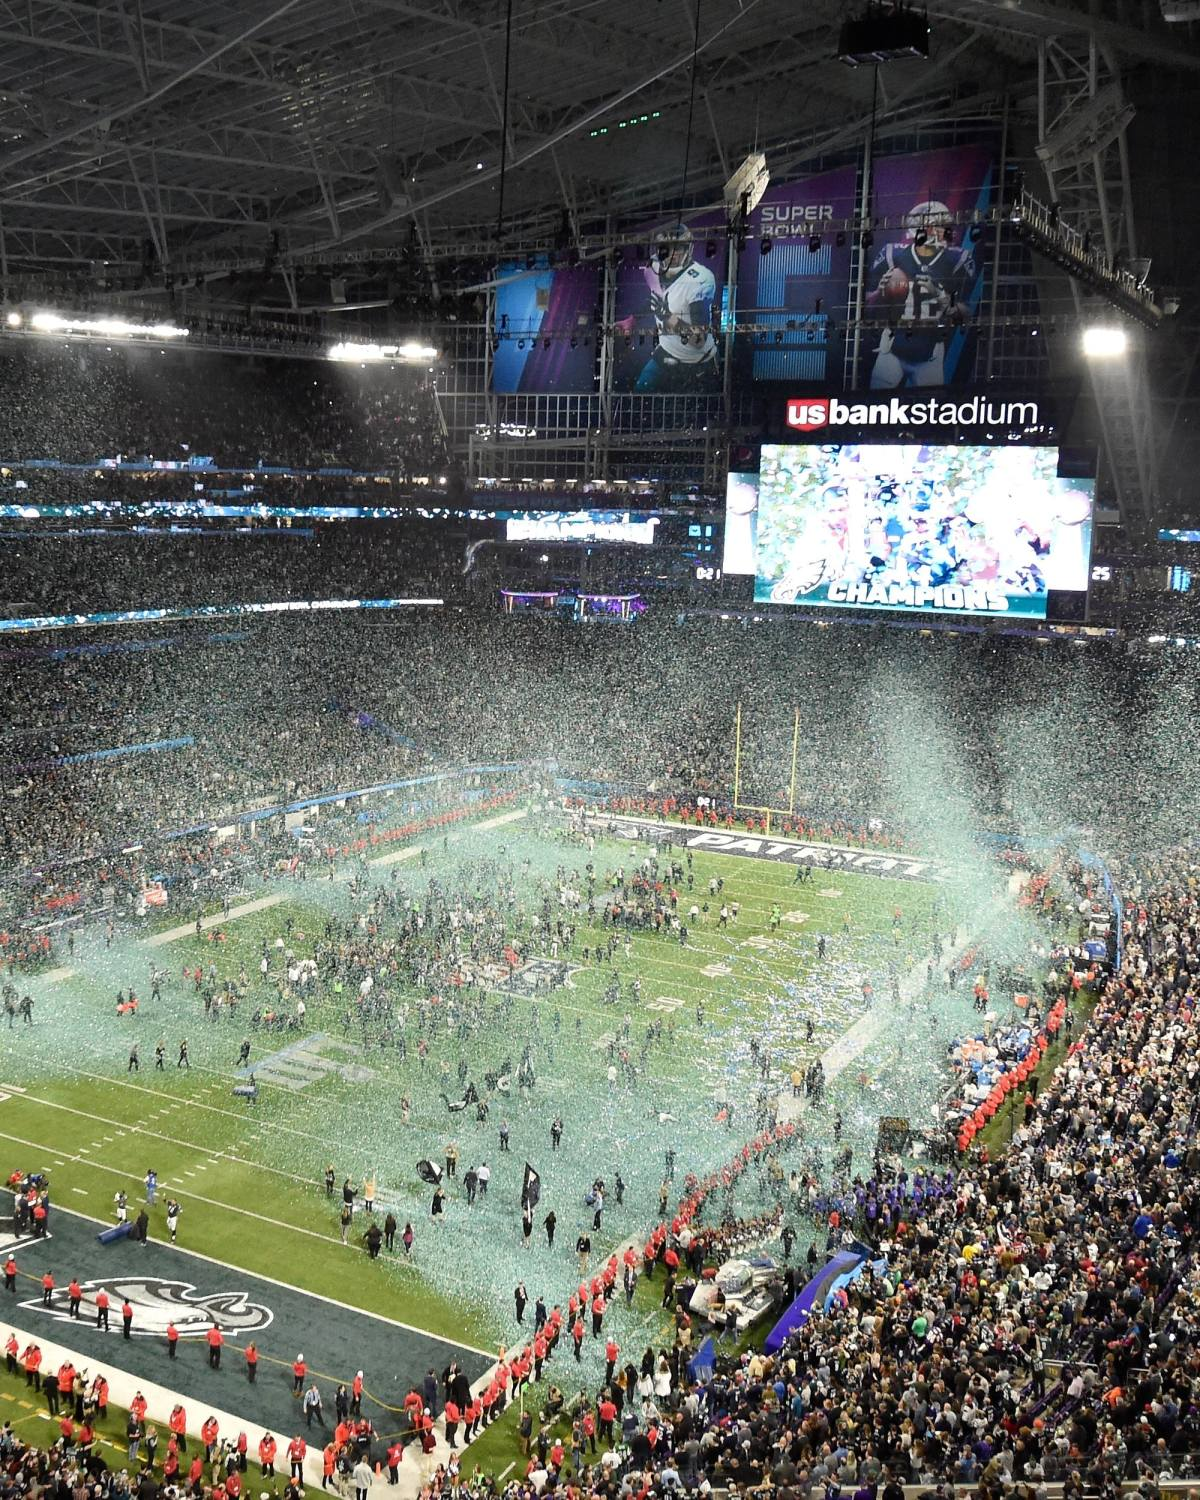 Minneapolis Super Bowl netted $370 million, report says | MPR News